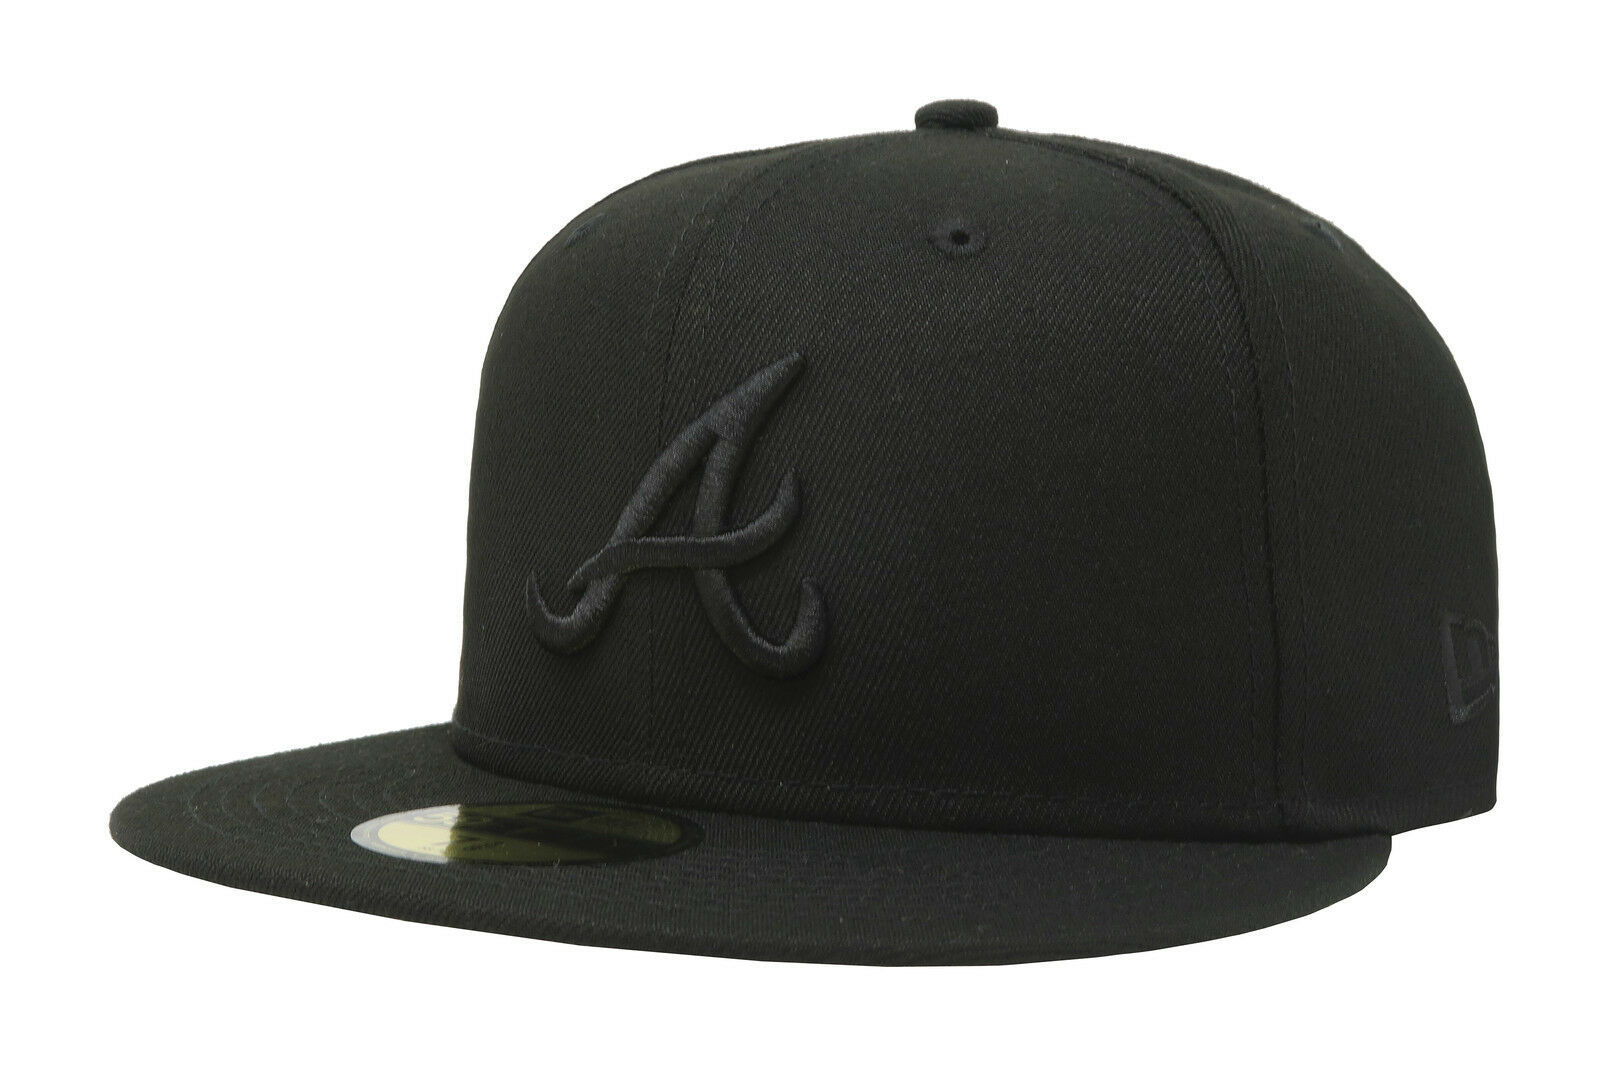 New Era 59Fifty Cap MLB Atlanta on Braves Mens Adult Black on Atlanta Black Fitted 5950 Hat 39d699